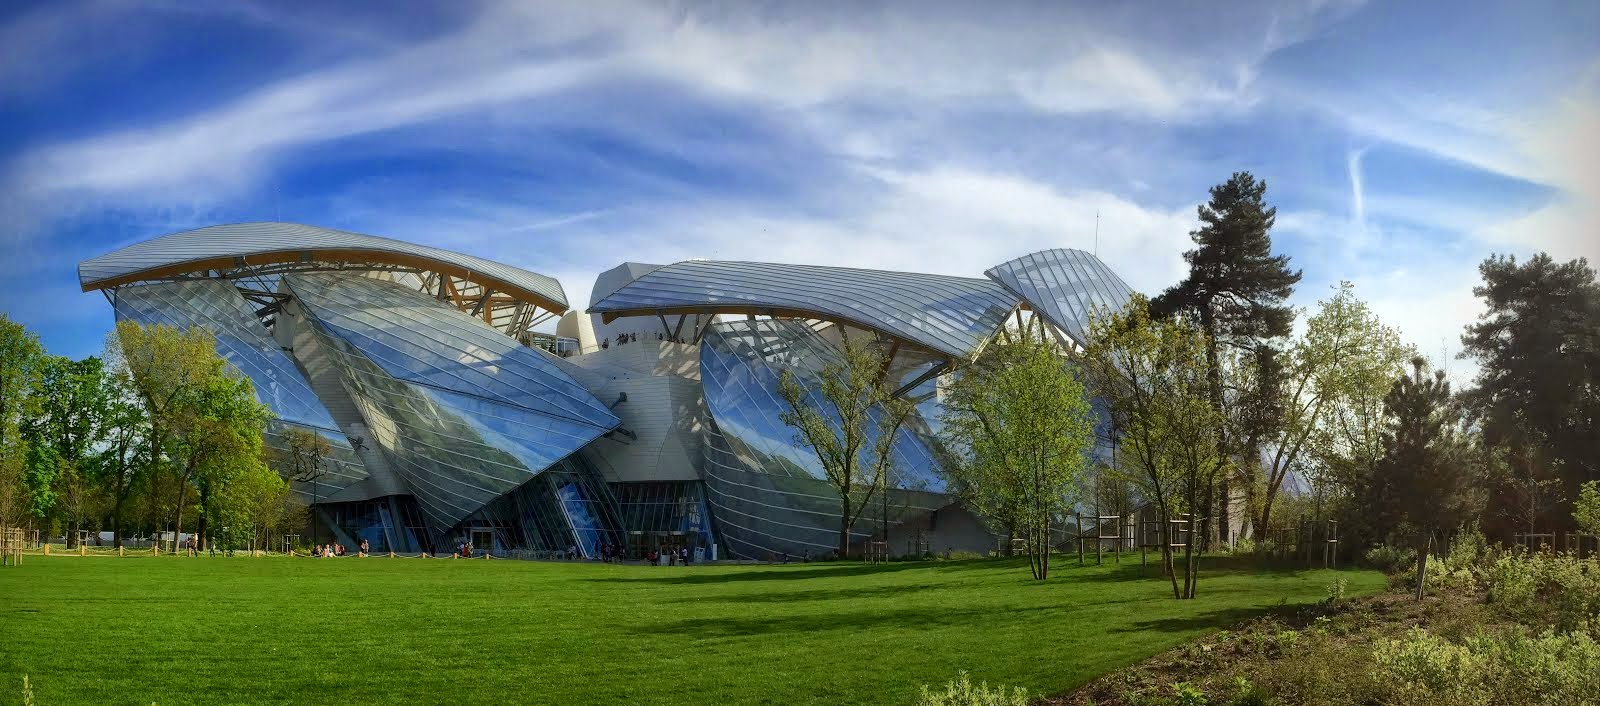 Foundation Loius Vuitton